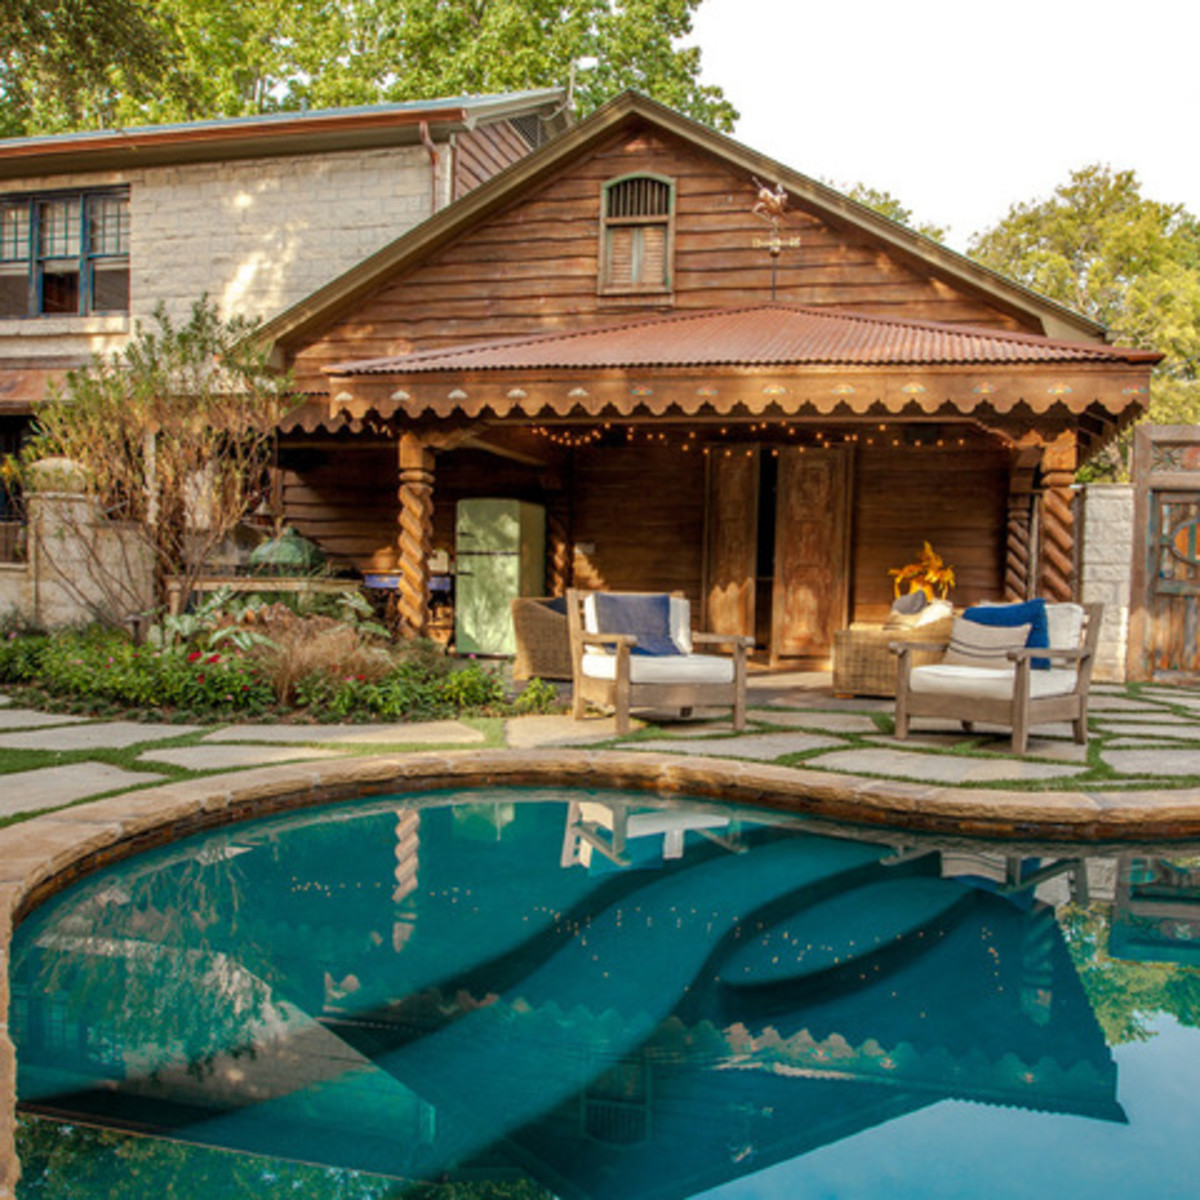 Dallas University Park home Houzz tour